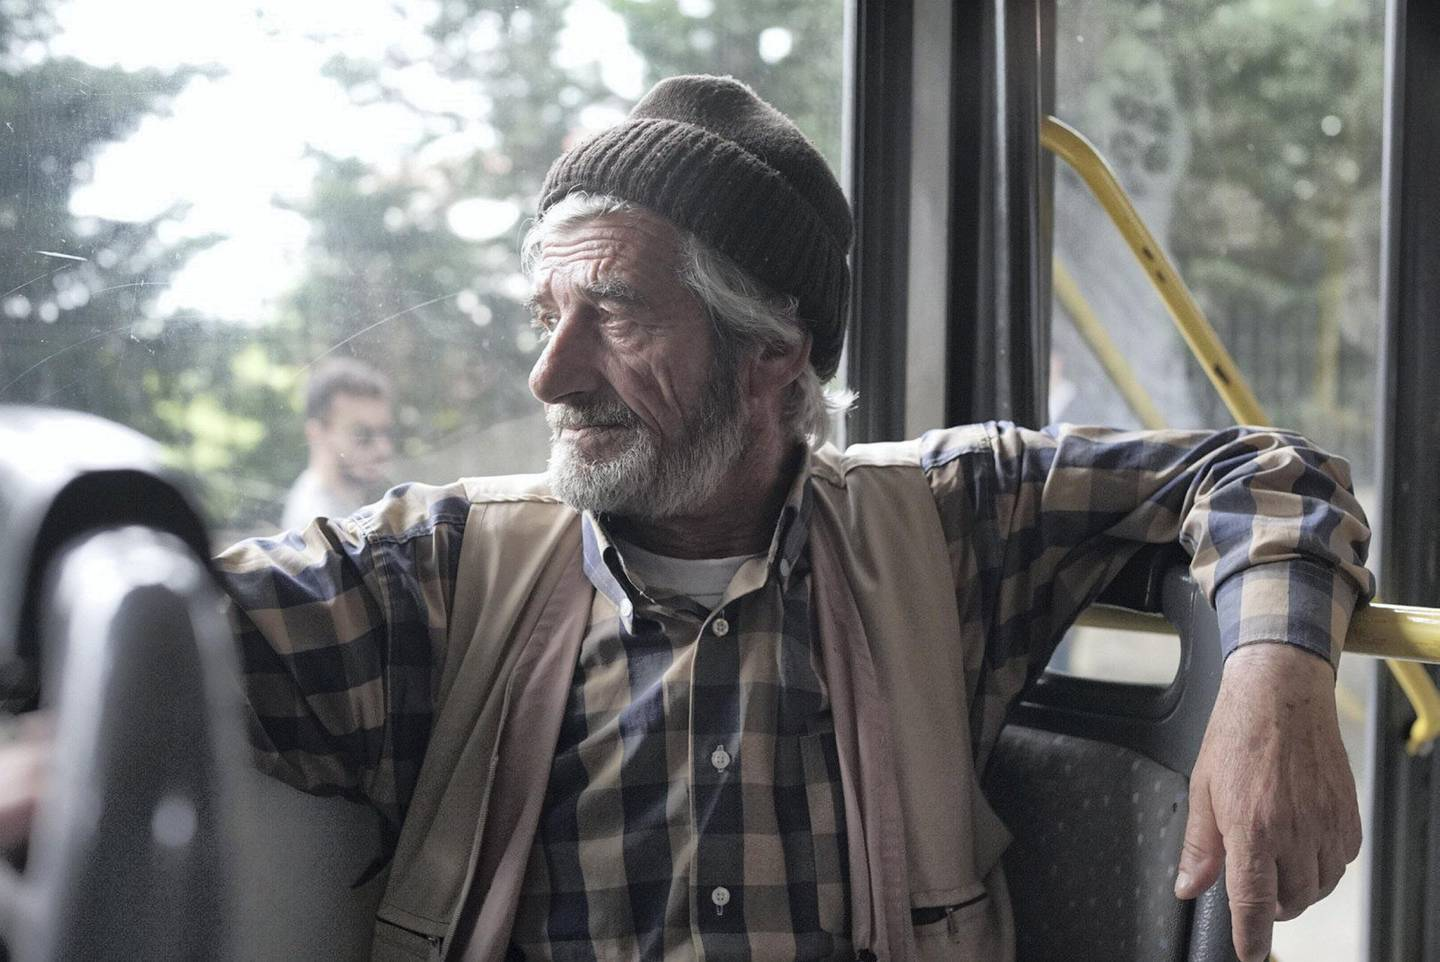 Writing the bus and having just came from voting, Zeki Nuria, 69, fisherman, he says that he voted for AKP because Turkey is going in the right direction. Photo by Shawn Carrié